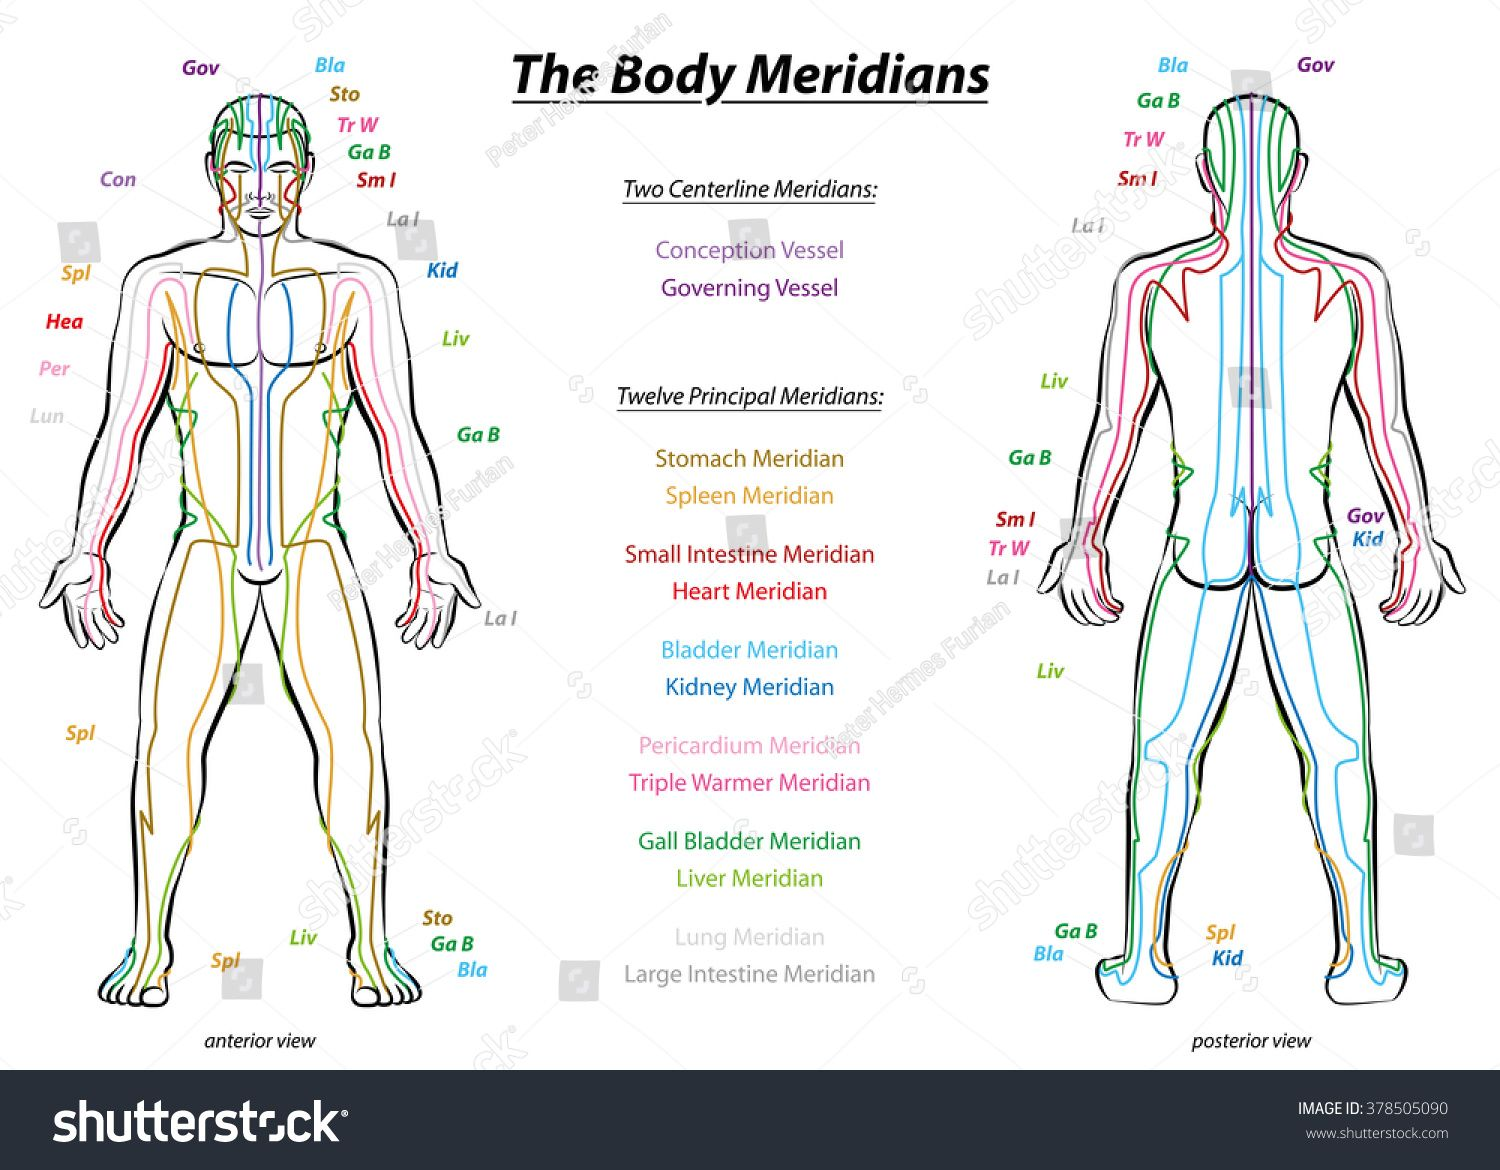 Meridian System Chart - Male body with principal and centerline ...